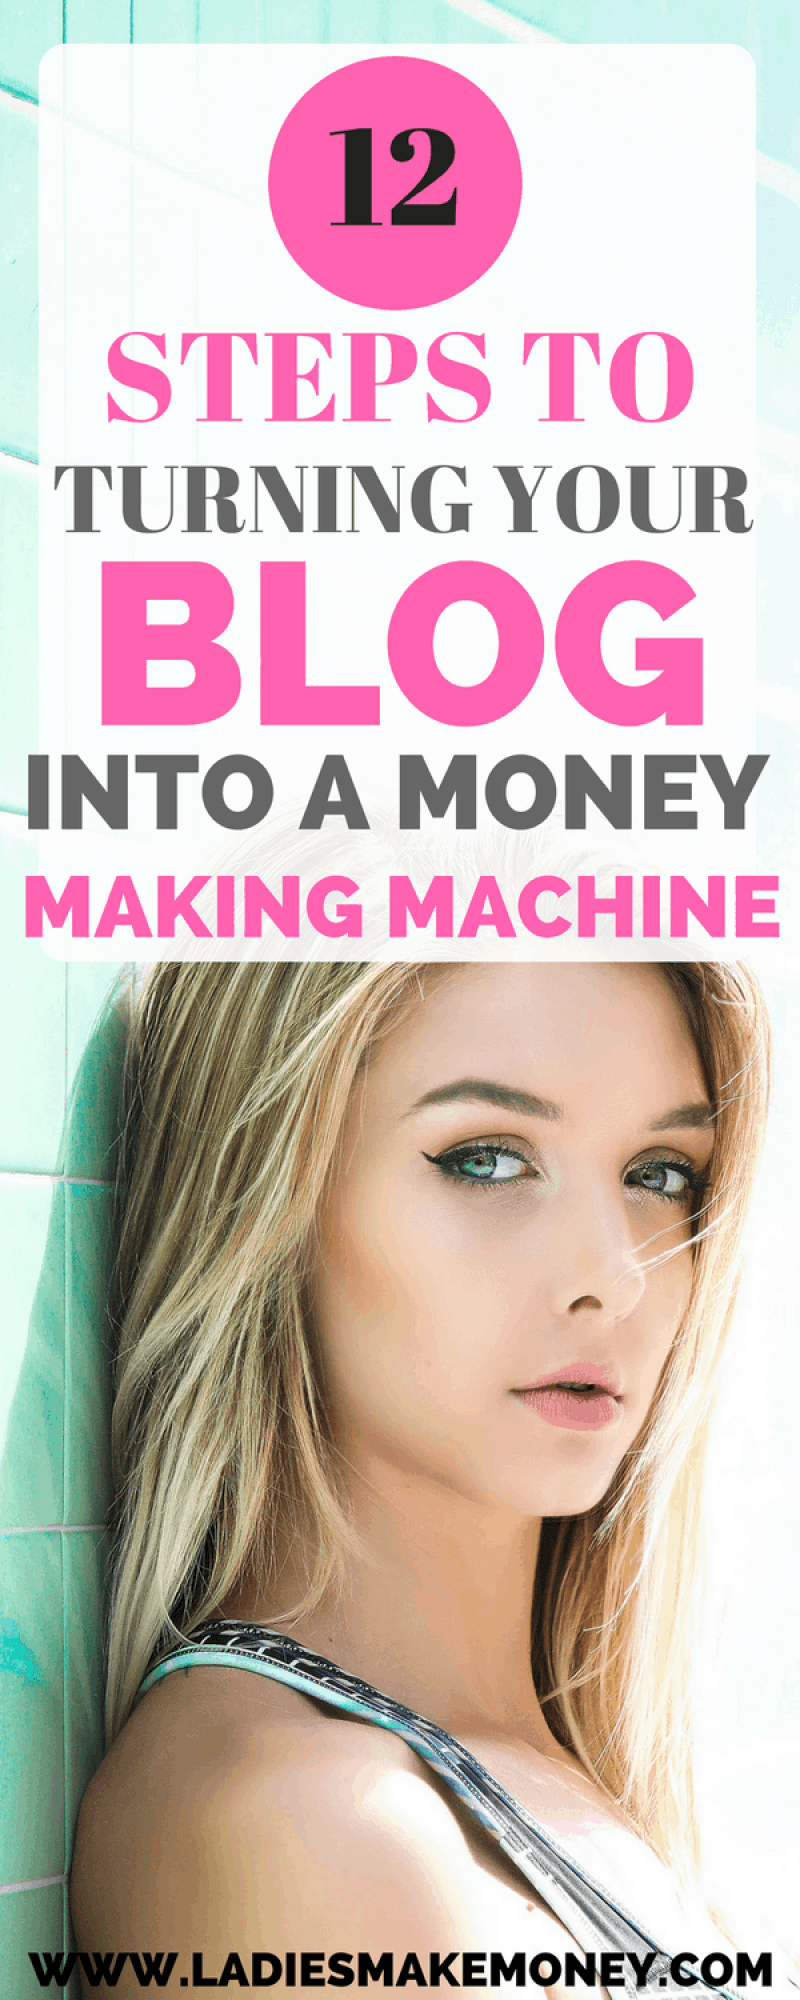 how to create my own blog and earn money